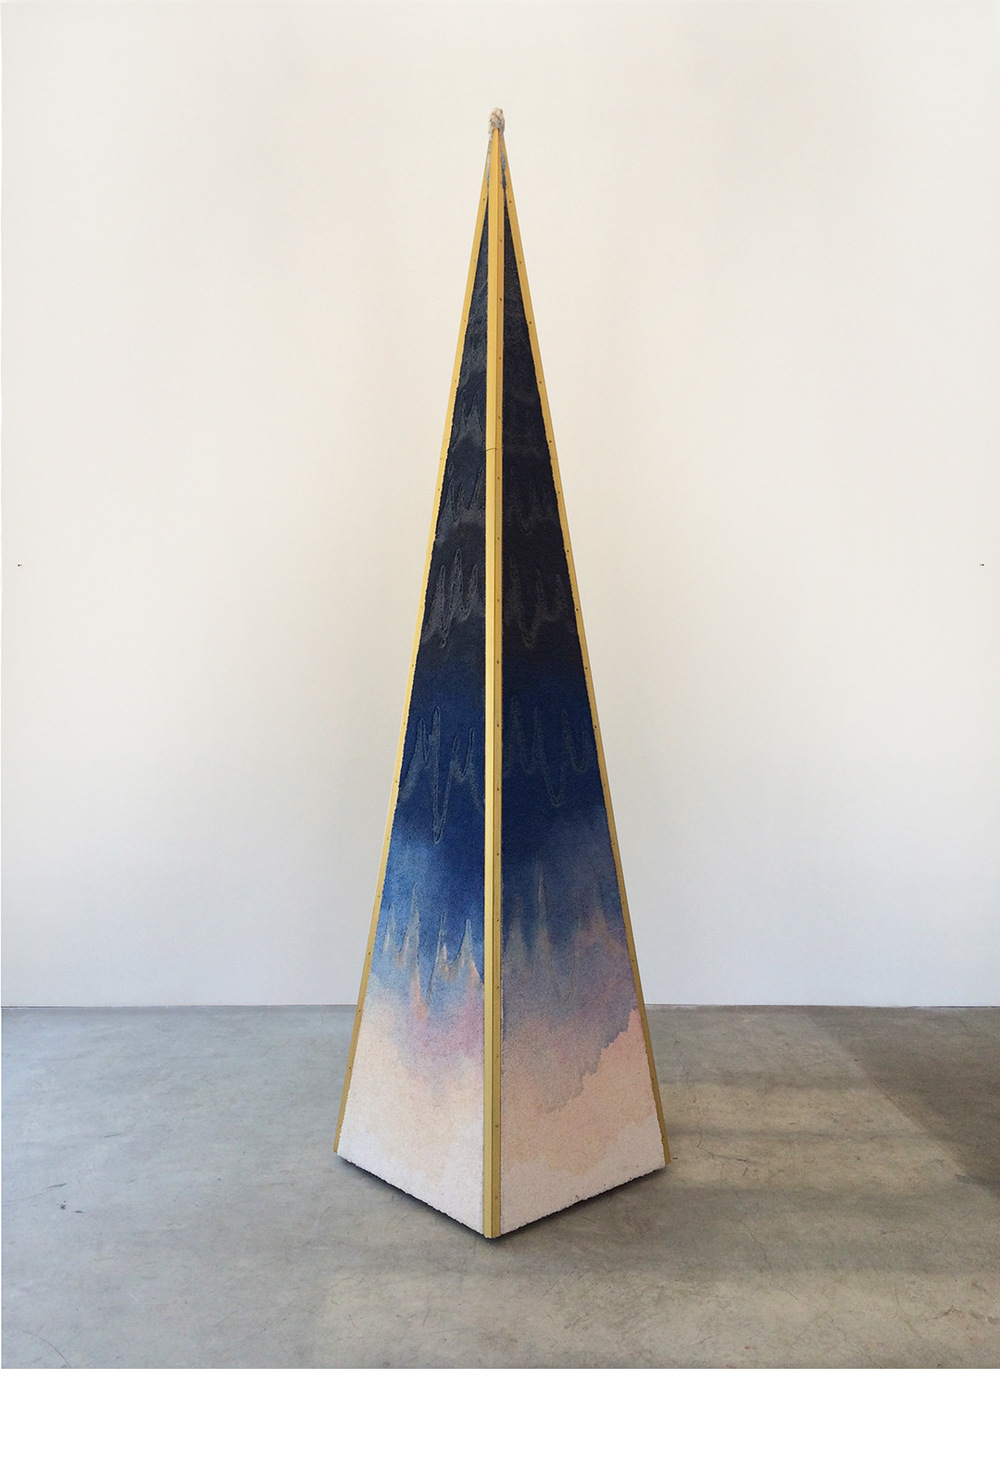 "Matias Cuevas - From the Bottom of Time #5 Carpet, carpet trim, paint thinners, fire, acrylic, and wood. 108"" x 24"" x 24"" (274 cm x 61 cm x 61cm) 2014 © Matias Cuevas"